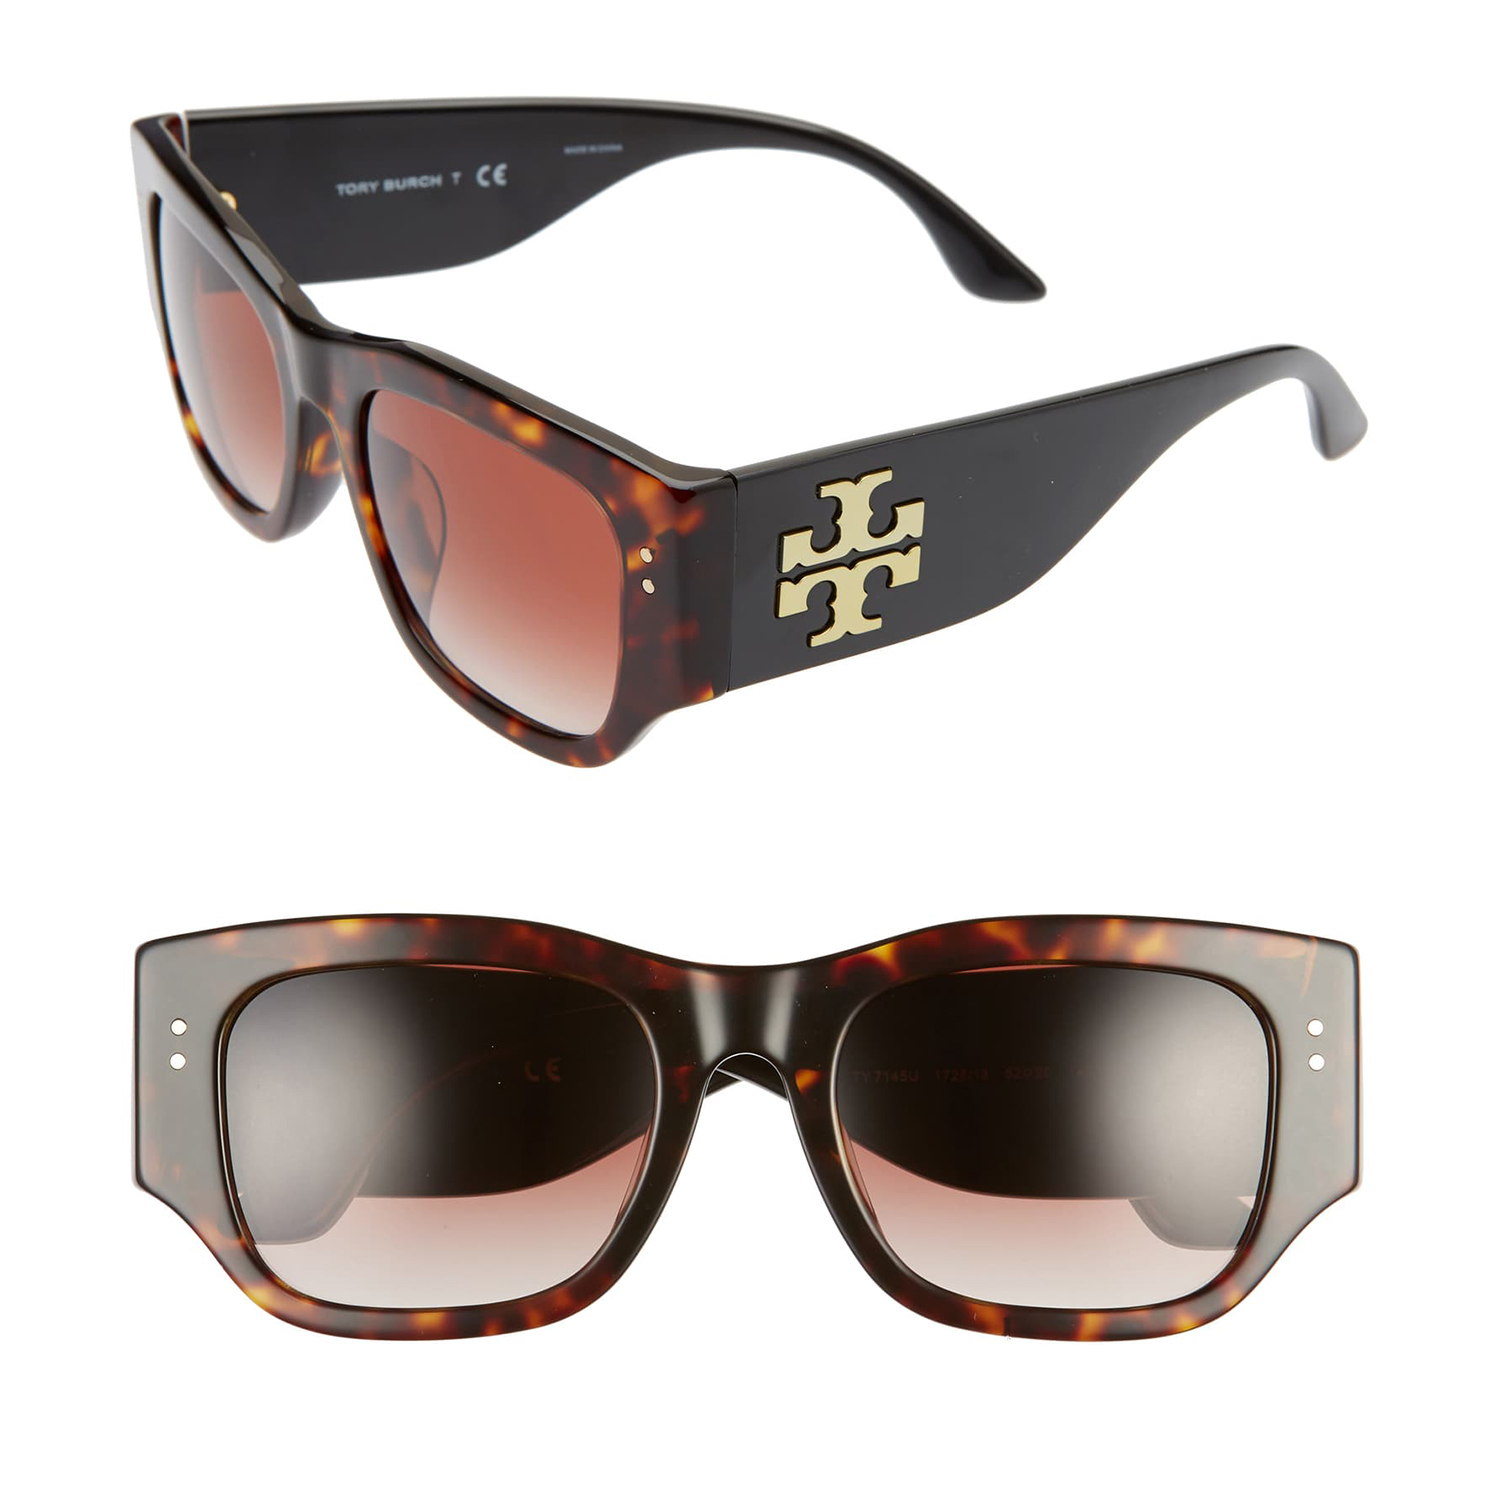 Tory Burch 52mm Gradient Rectangular Sunglasses